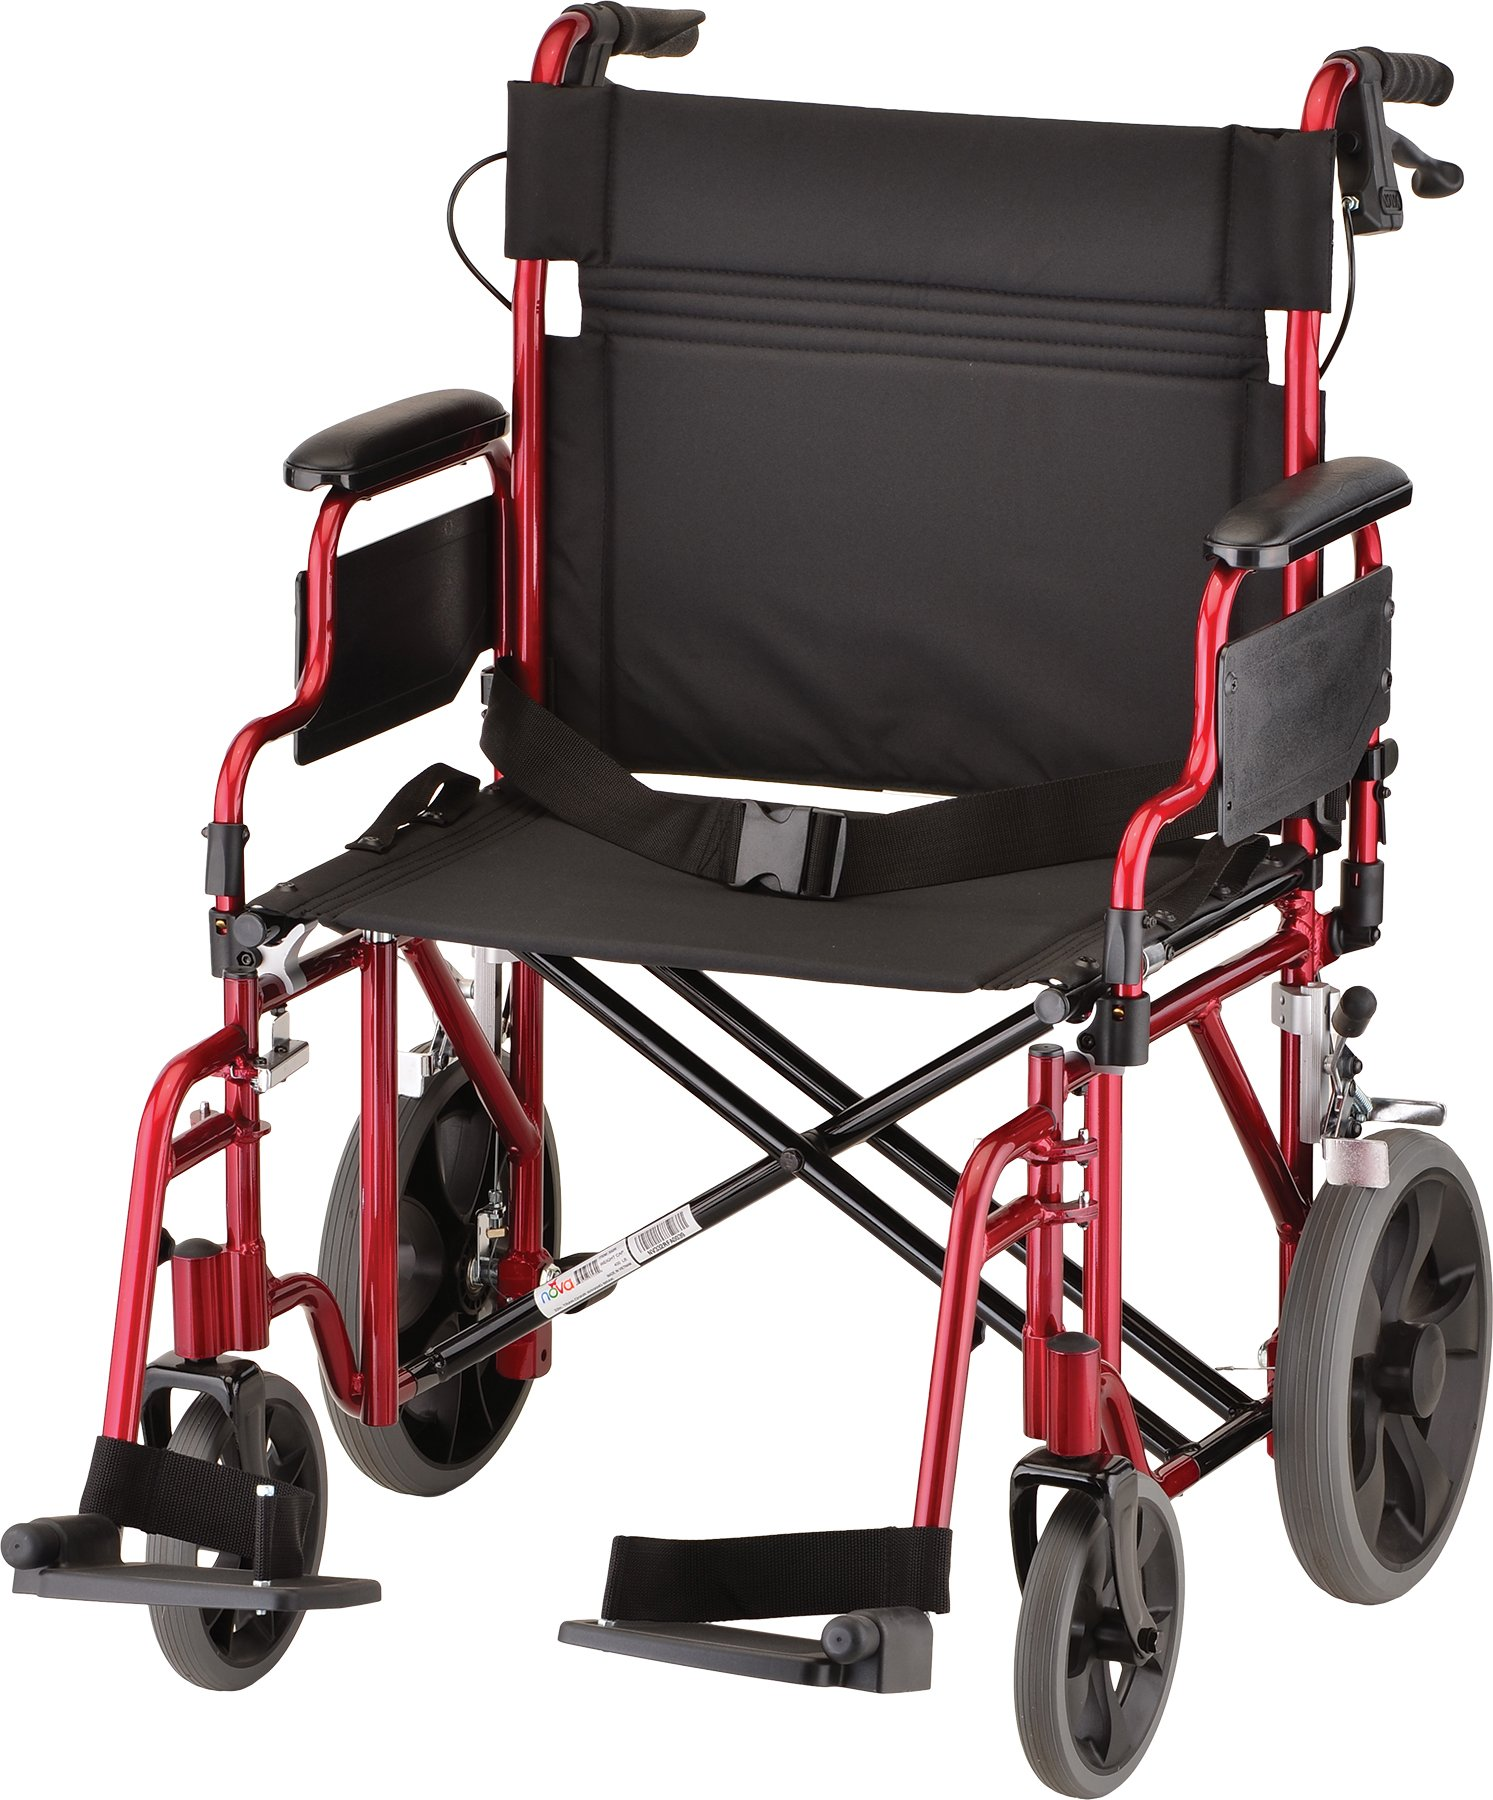 NOVA Medical Products 22'' Heavy Duty Transport Wheelchair, Red